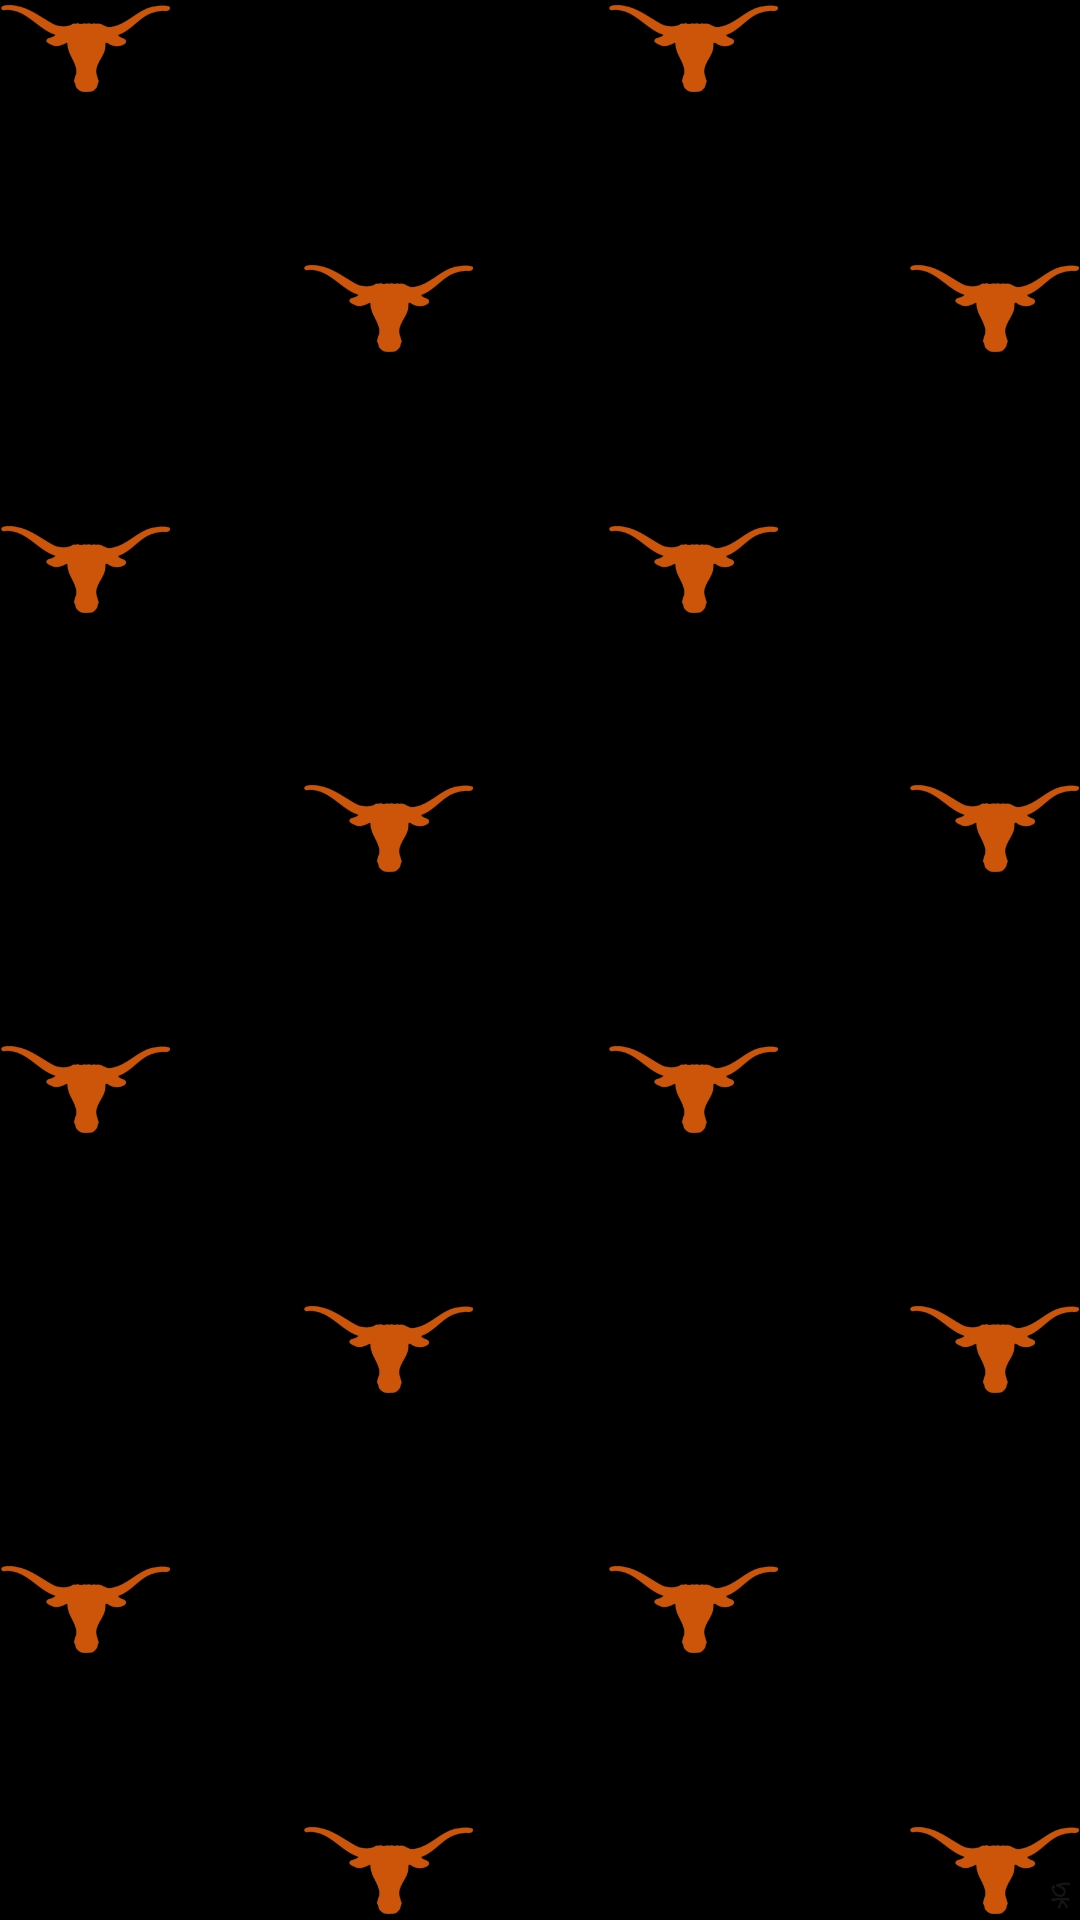 longhorn gray iphone wallpaper texas longhorns themes graphics